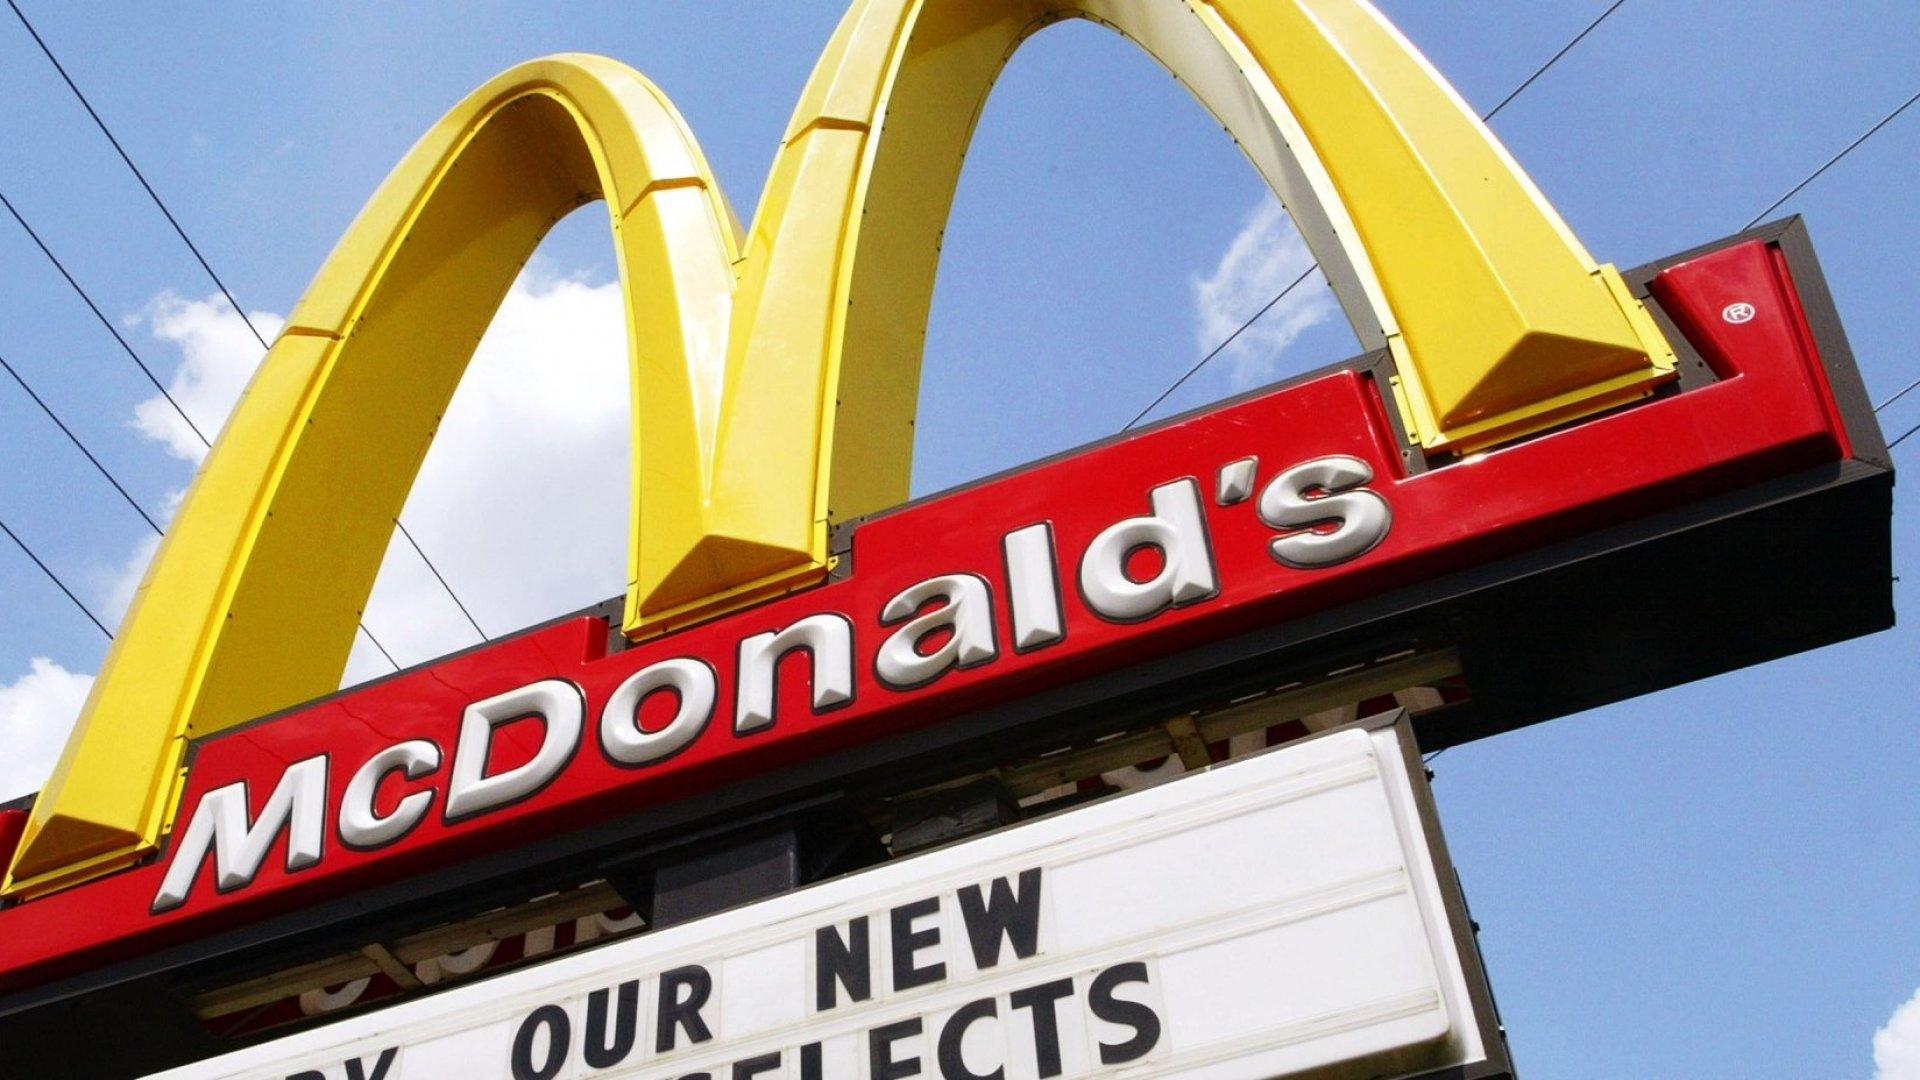 McDonald's May Be Getting Ready to Make a Brilliant Move That Will Change Everything